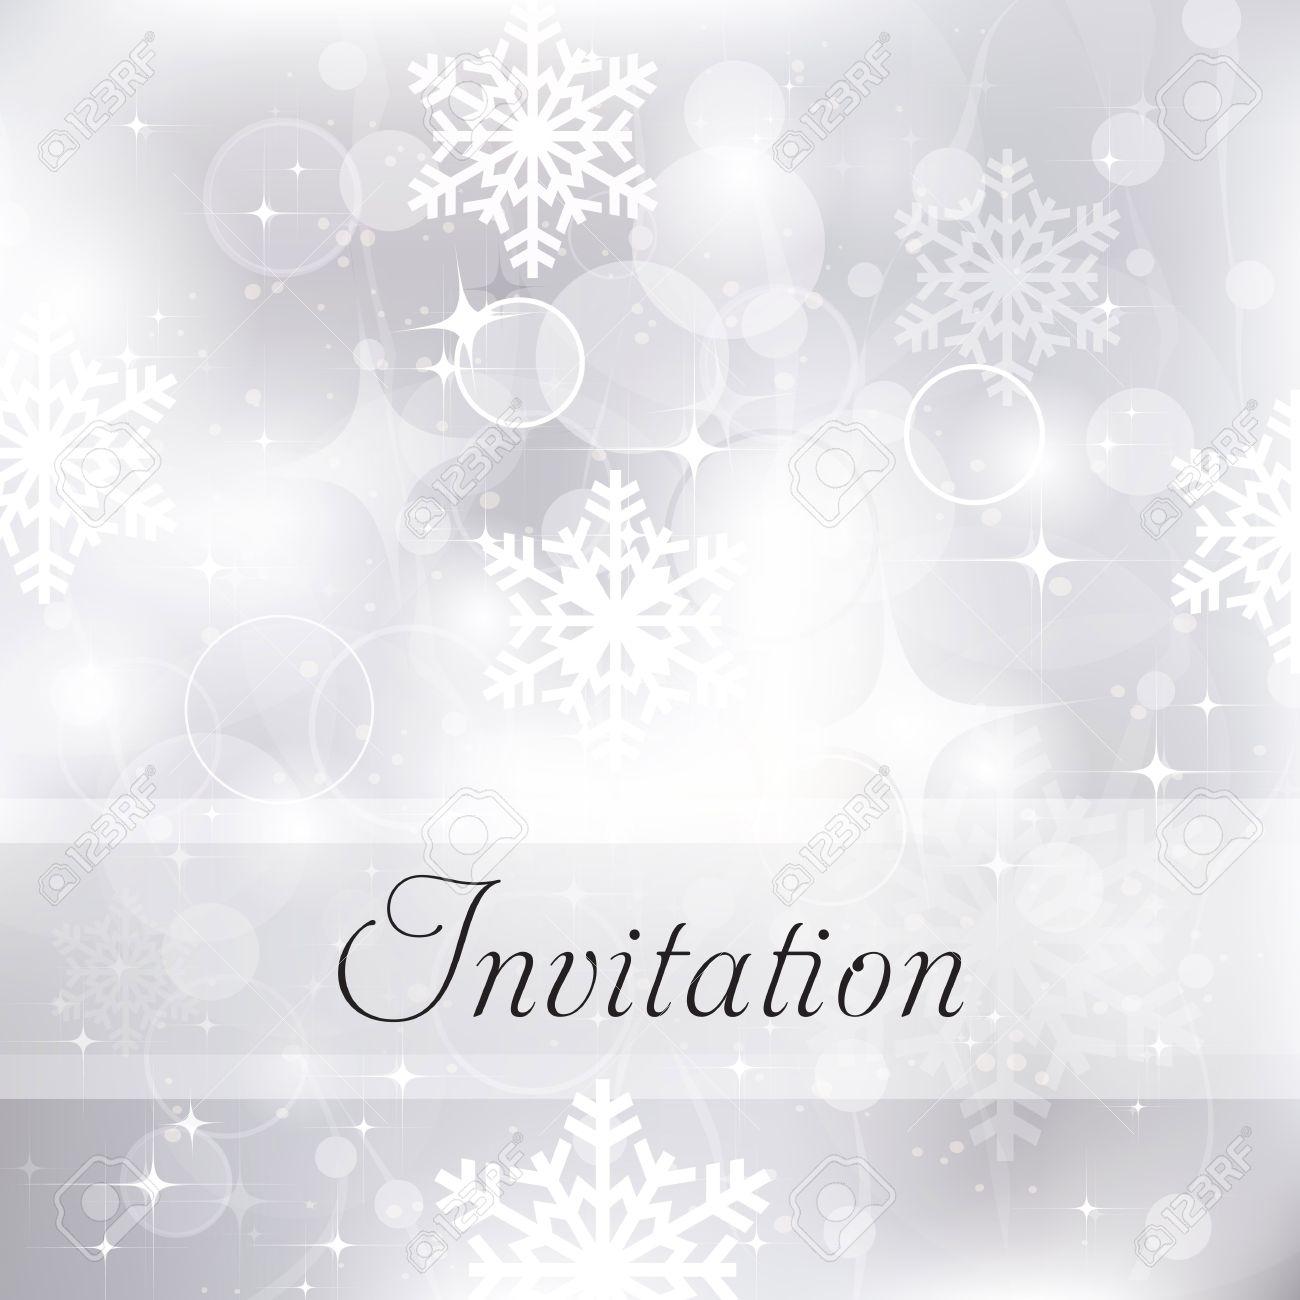 Glittery silver christmas invitation background royalty free glittery silver christmas invitation background stock vector 29826252 stopboris Image collections